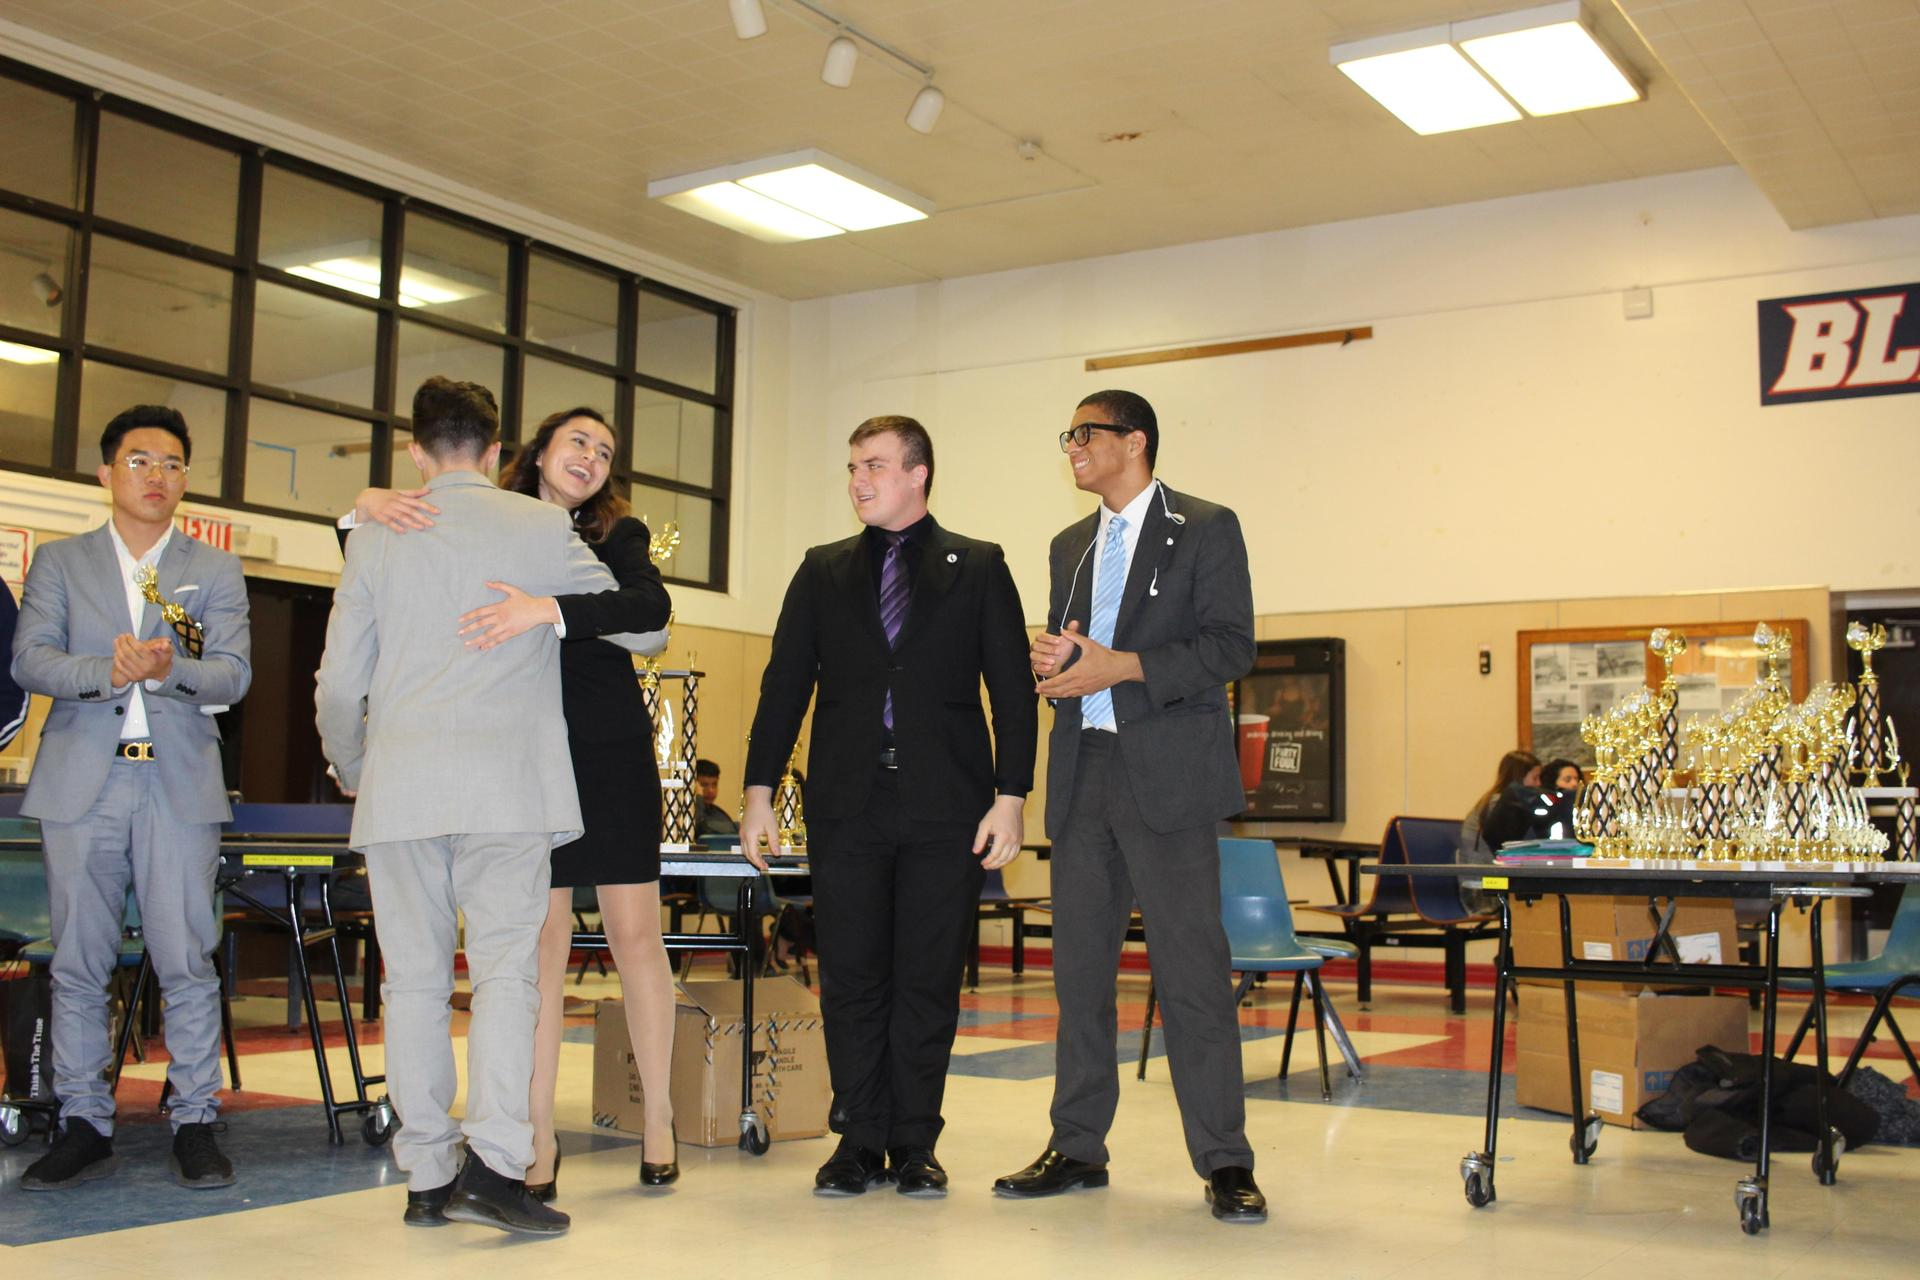 Andrea Jimenez reacts to winning the Speech and Debate Valley Championship for Original Oratory.